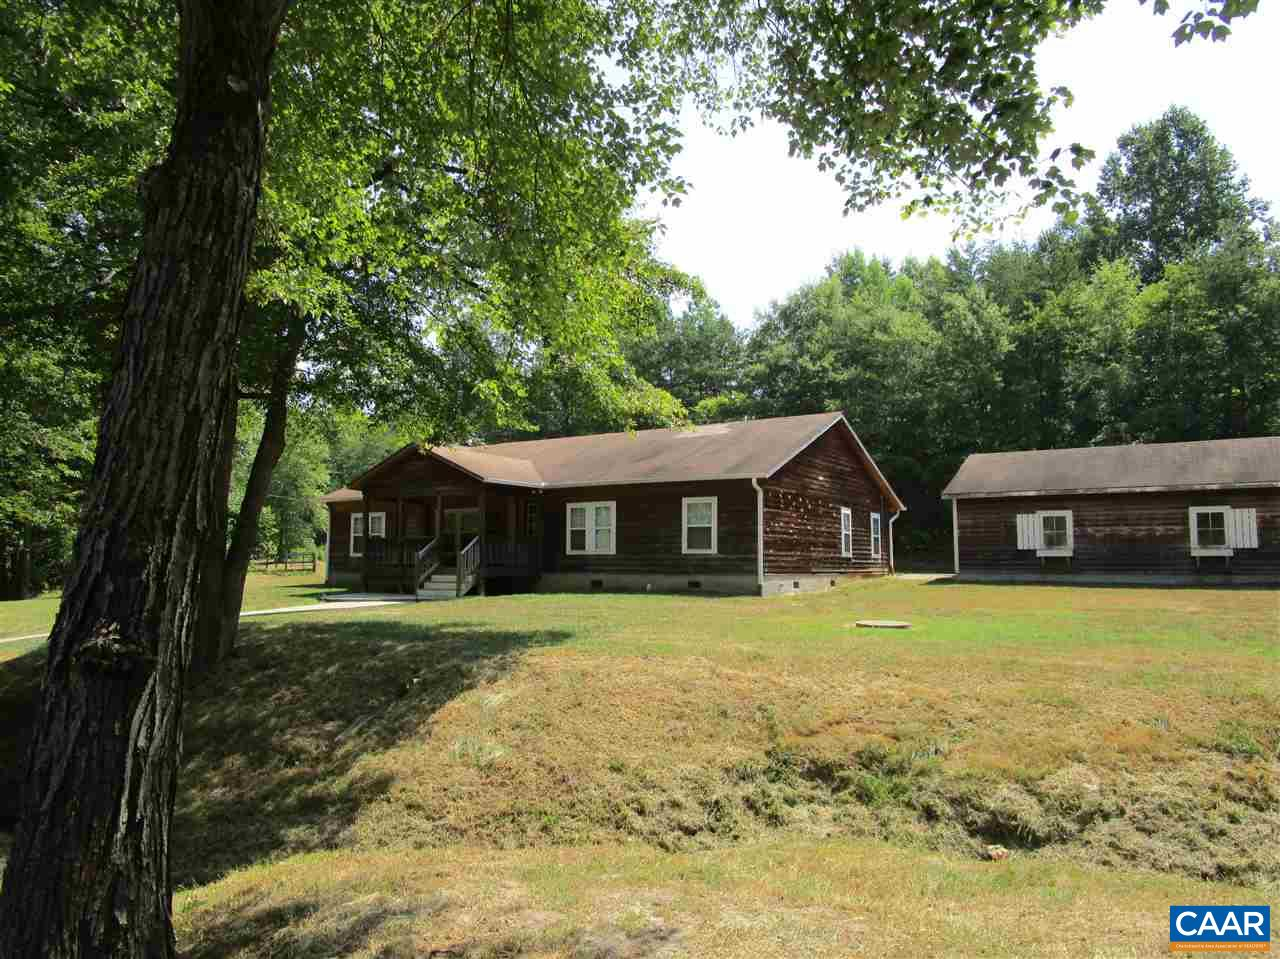 Single Family Home for Sale at 951 GRACE JOHNSON Road 951 GRACE JOHNSON Road Kents Store, Virginia 23084 United States